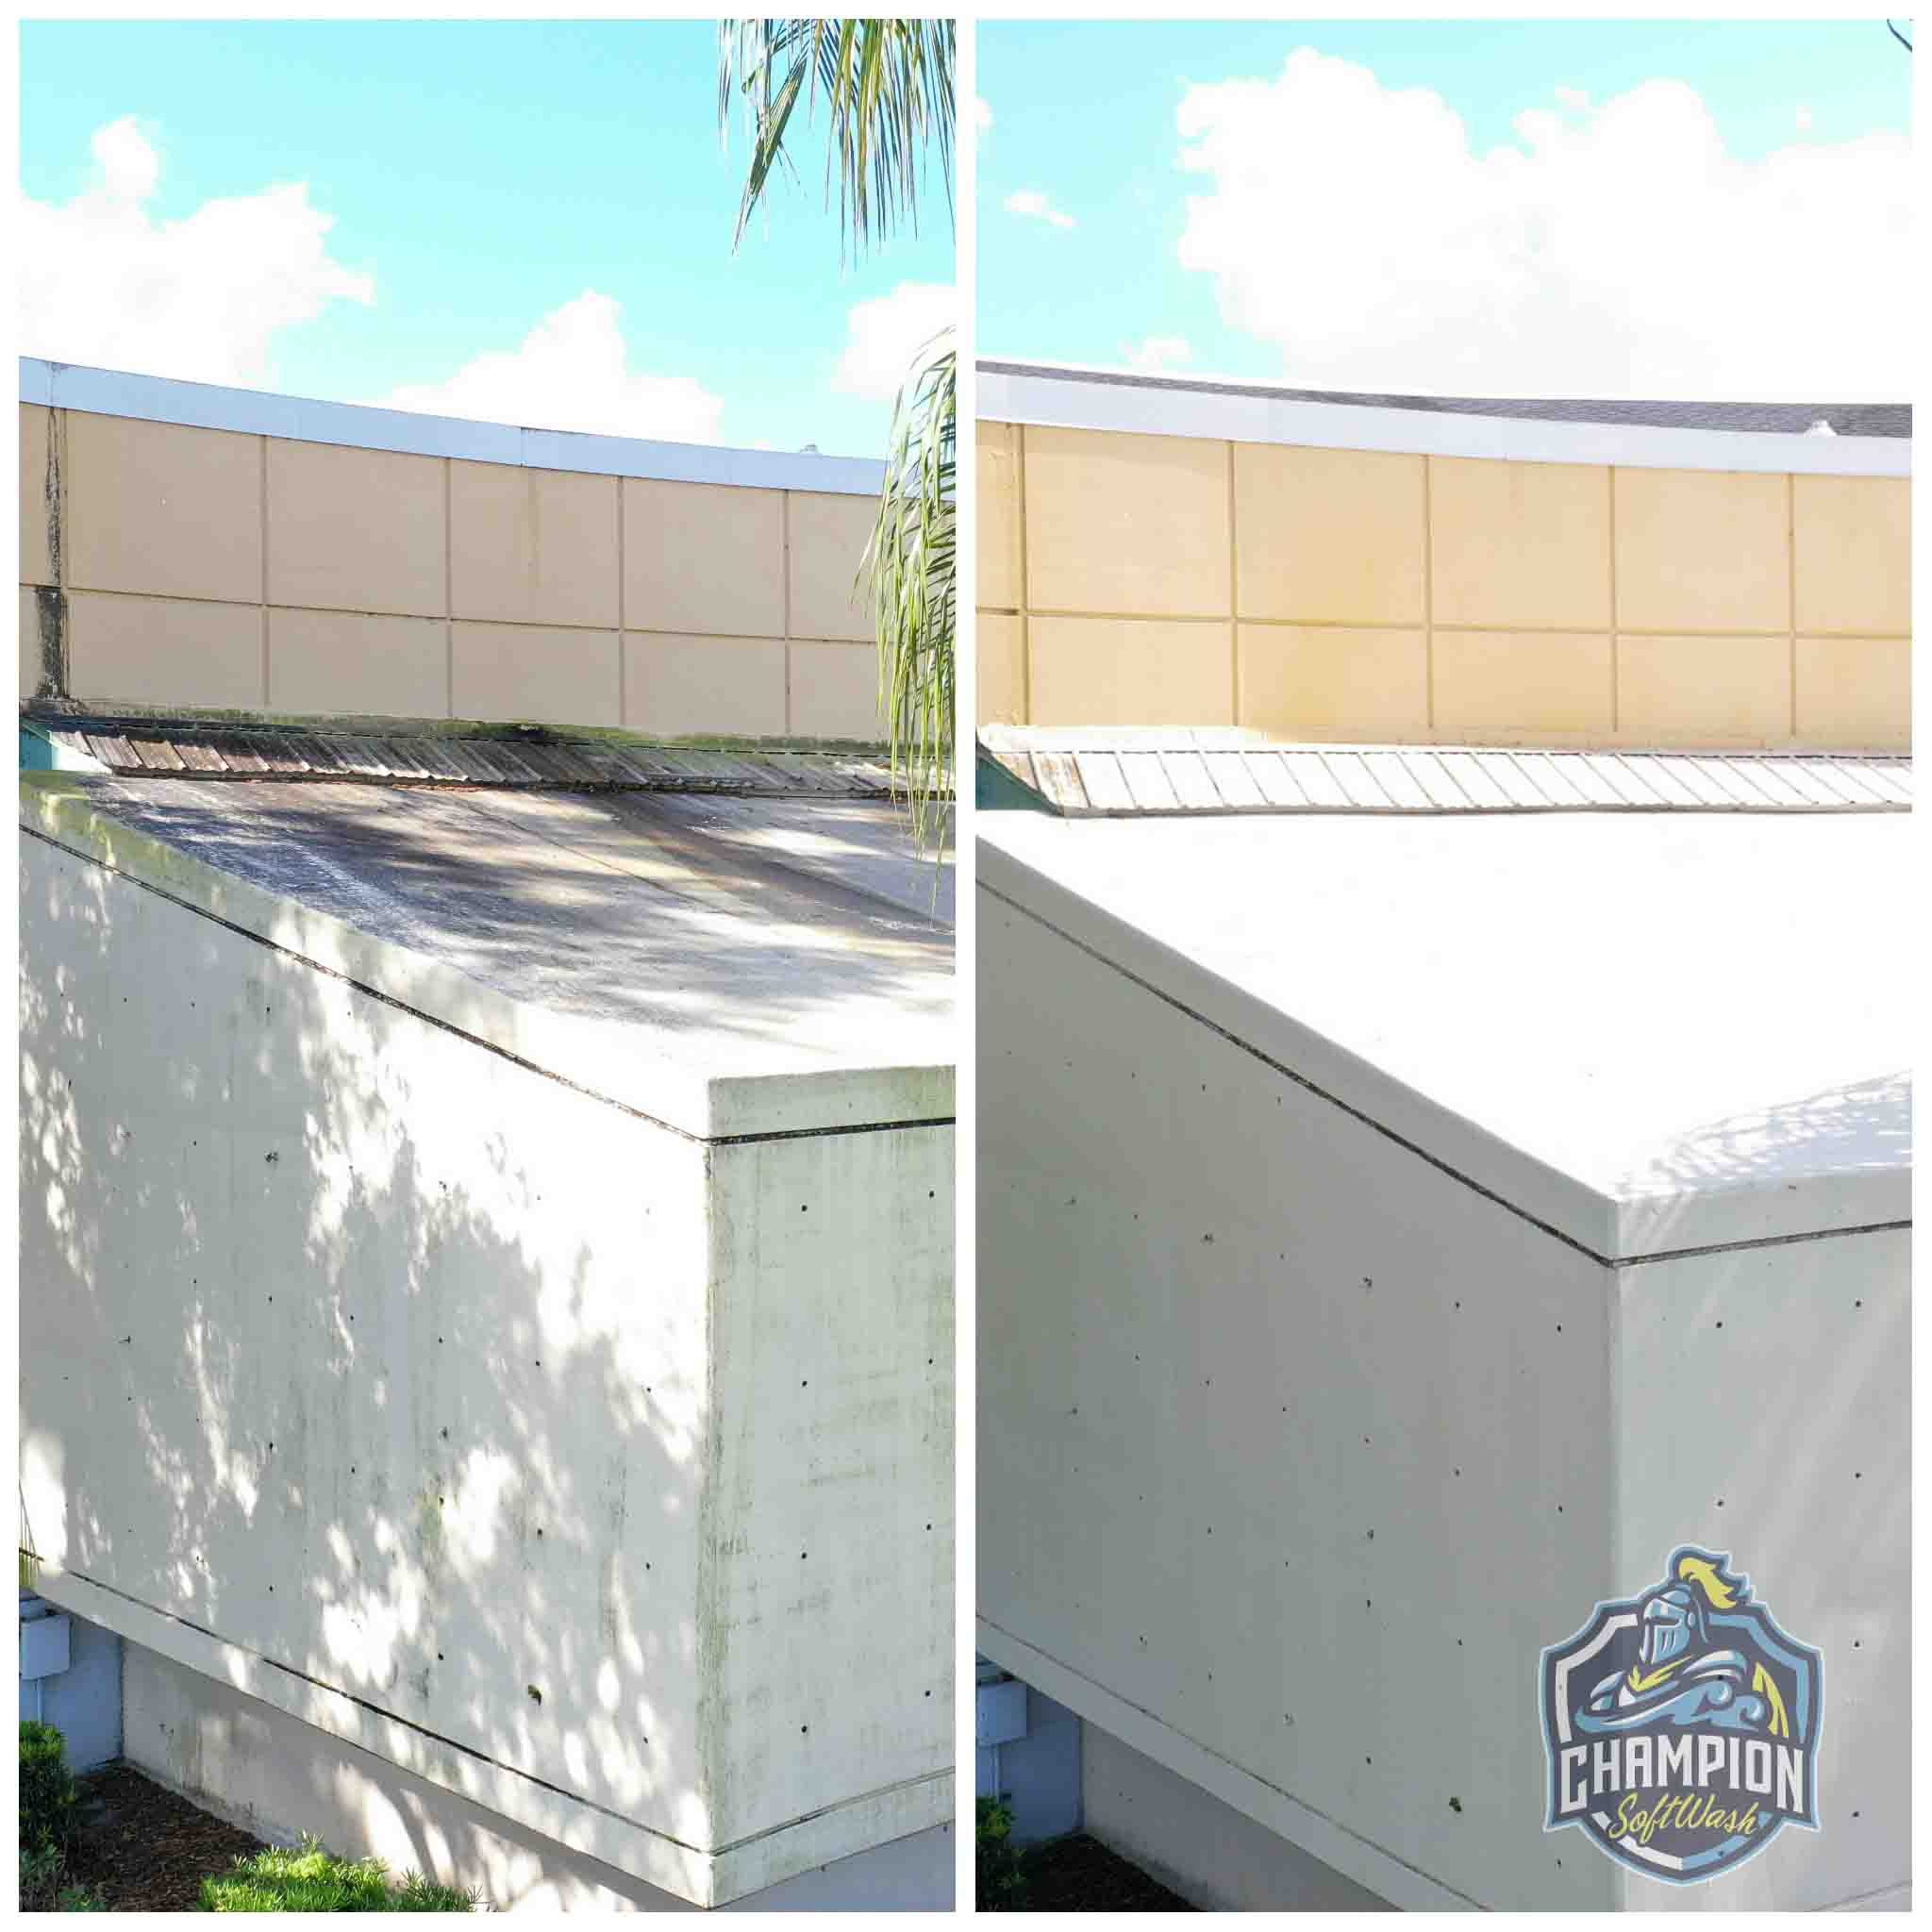 Before and After of Downtown Sanford Civic Center Roof and Exterior Cleaning using Soft Wash no pressure washer, Florida Pressure Expert, American SoftWash